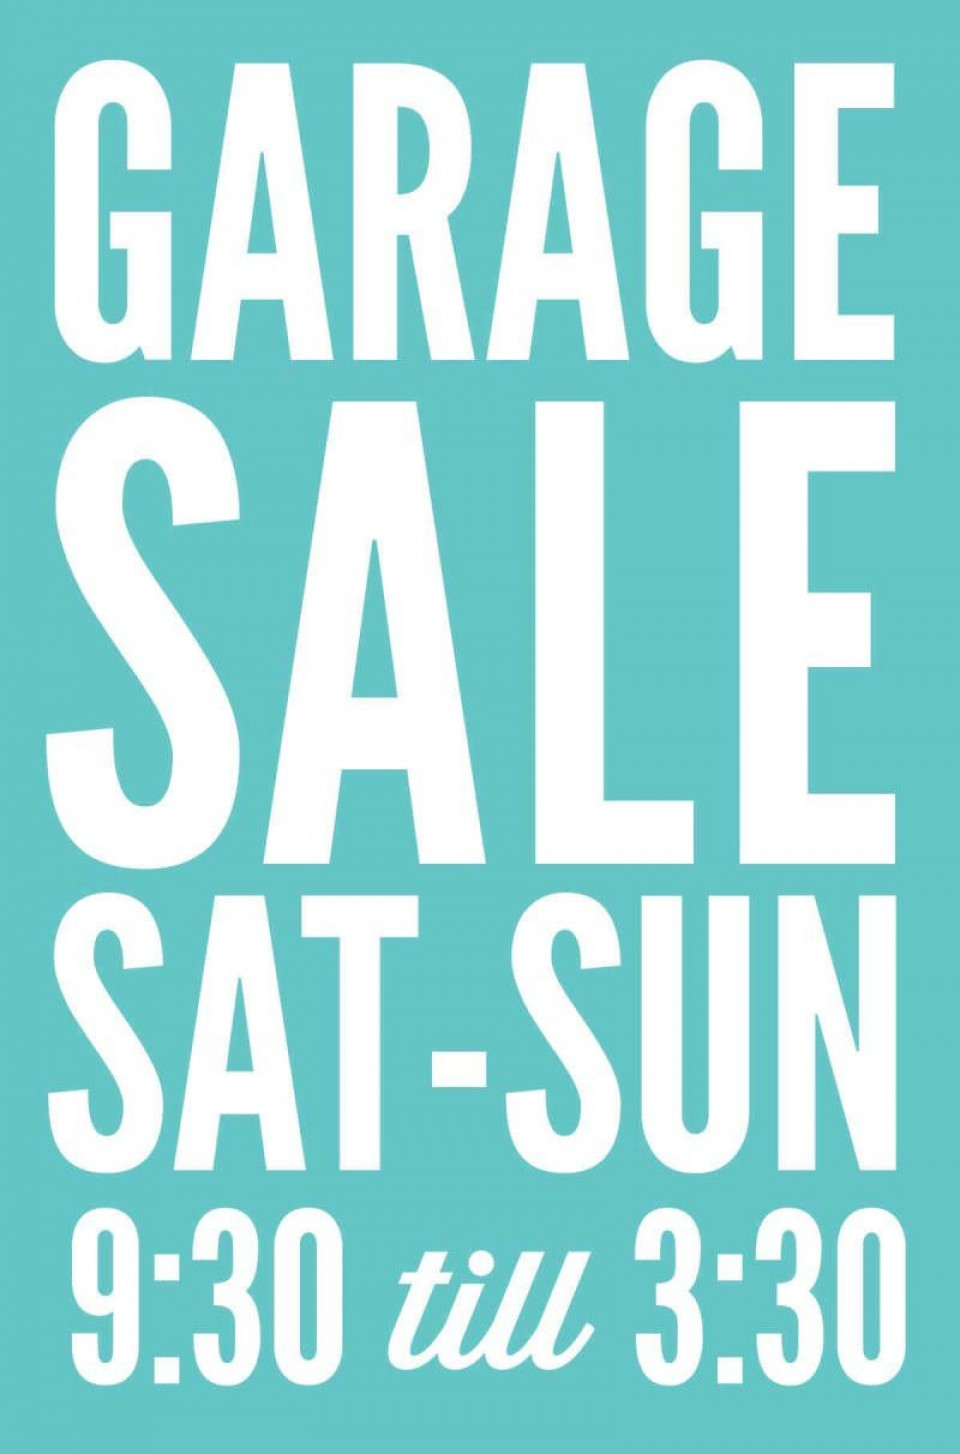 005 Frightening Garage Sale Sign Template Picture  Flyer Microsoft Word Community Yard Free Rummage960